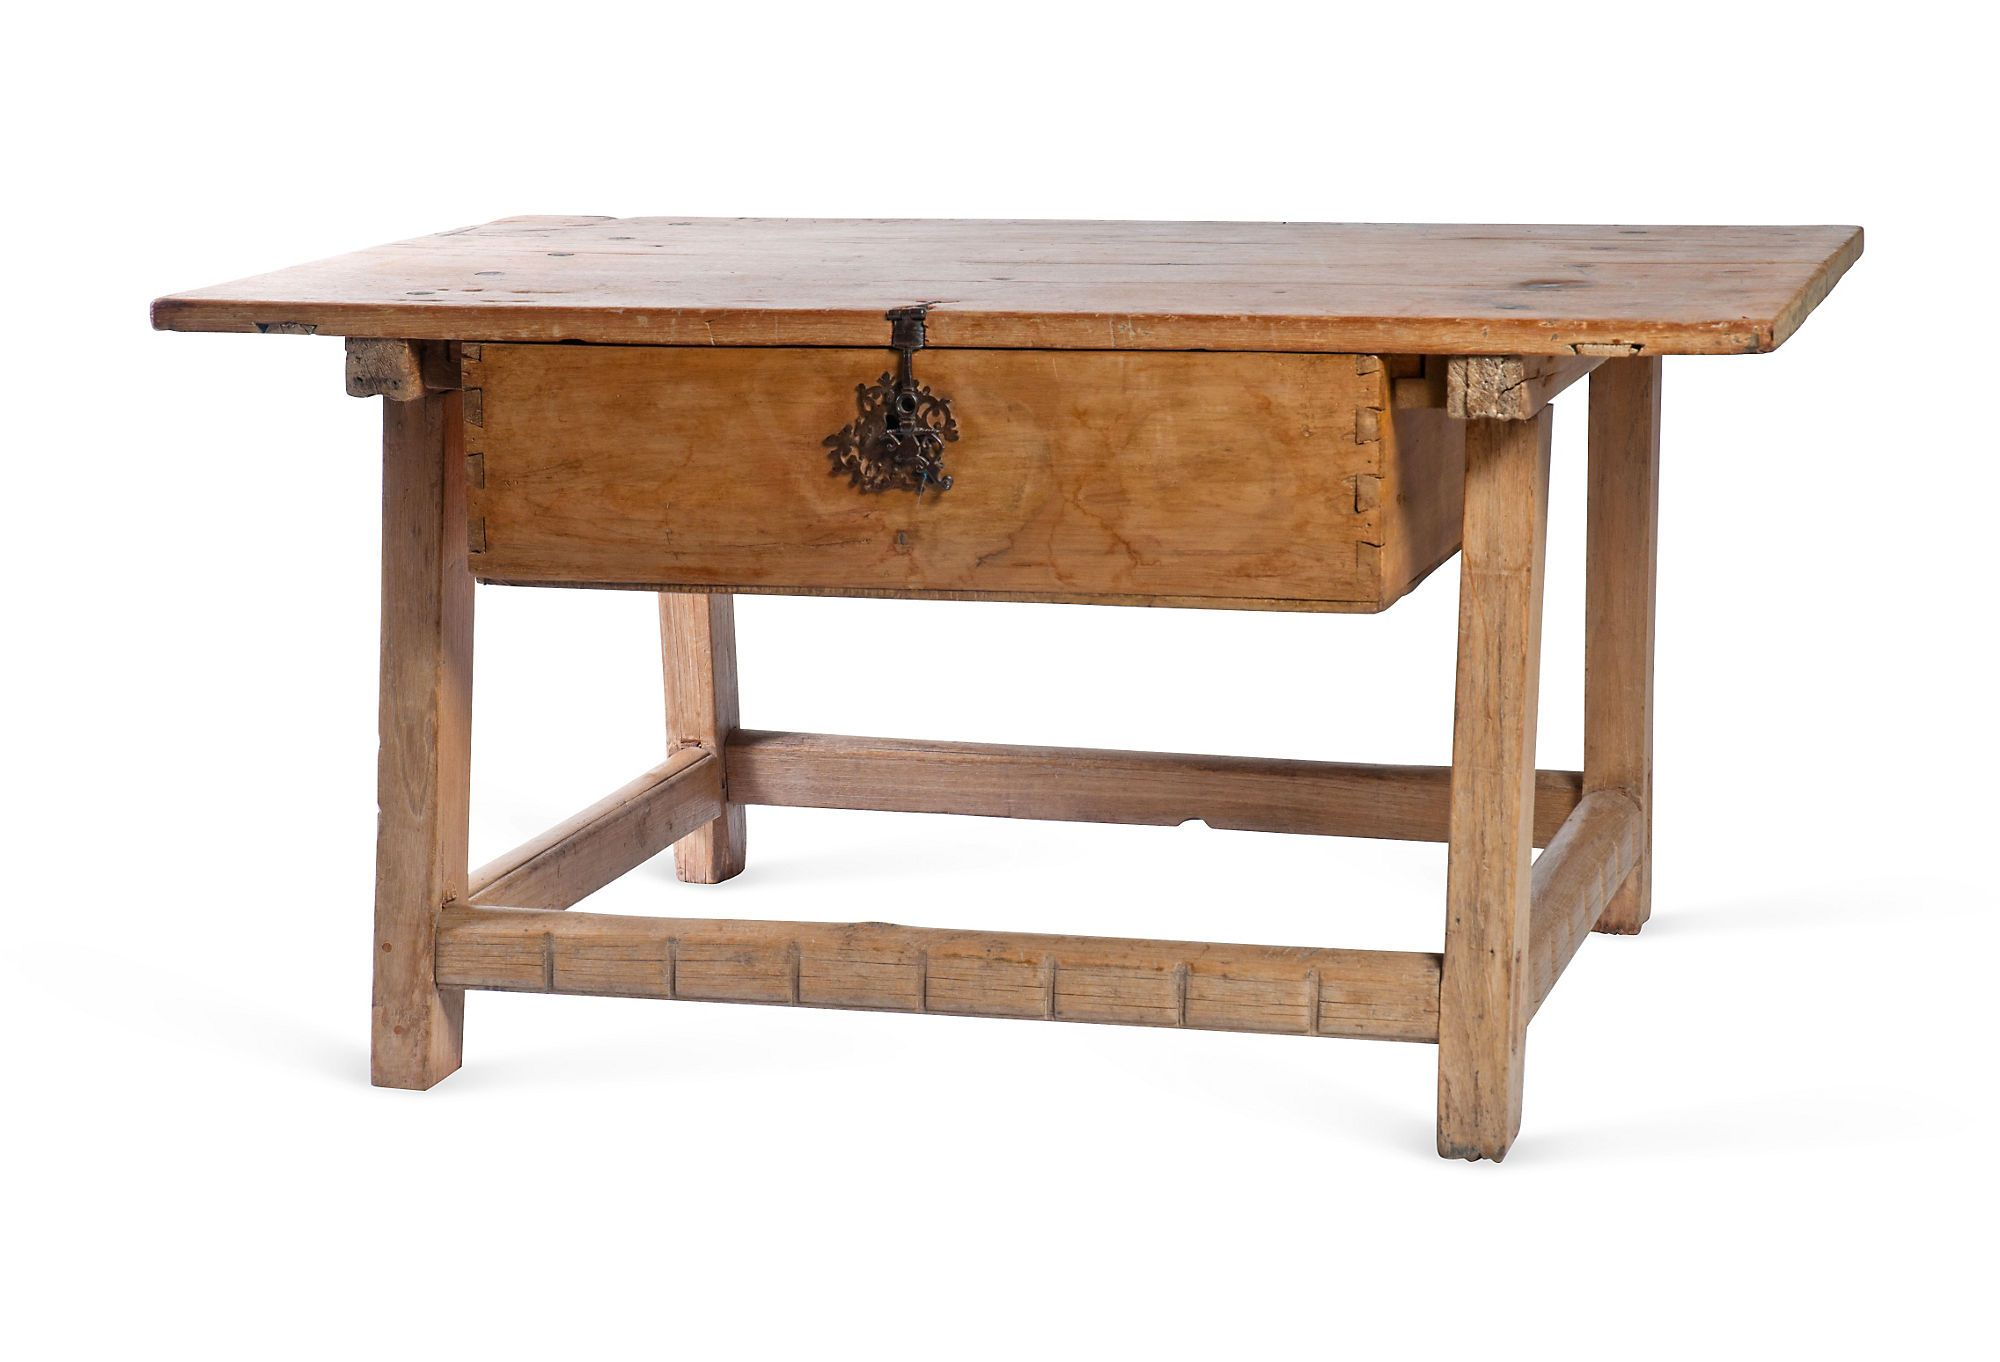 Late 18th Century Mexican Sabino Wood Hacienda Table With Top Made From A  Single Piece Of Sabino Wood. Splayed Legs With Exposed Mortise And Tenon  Joinery, ...